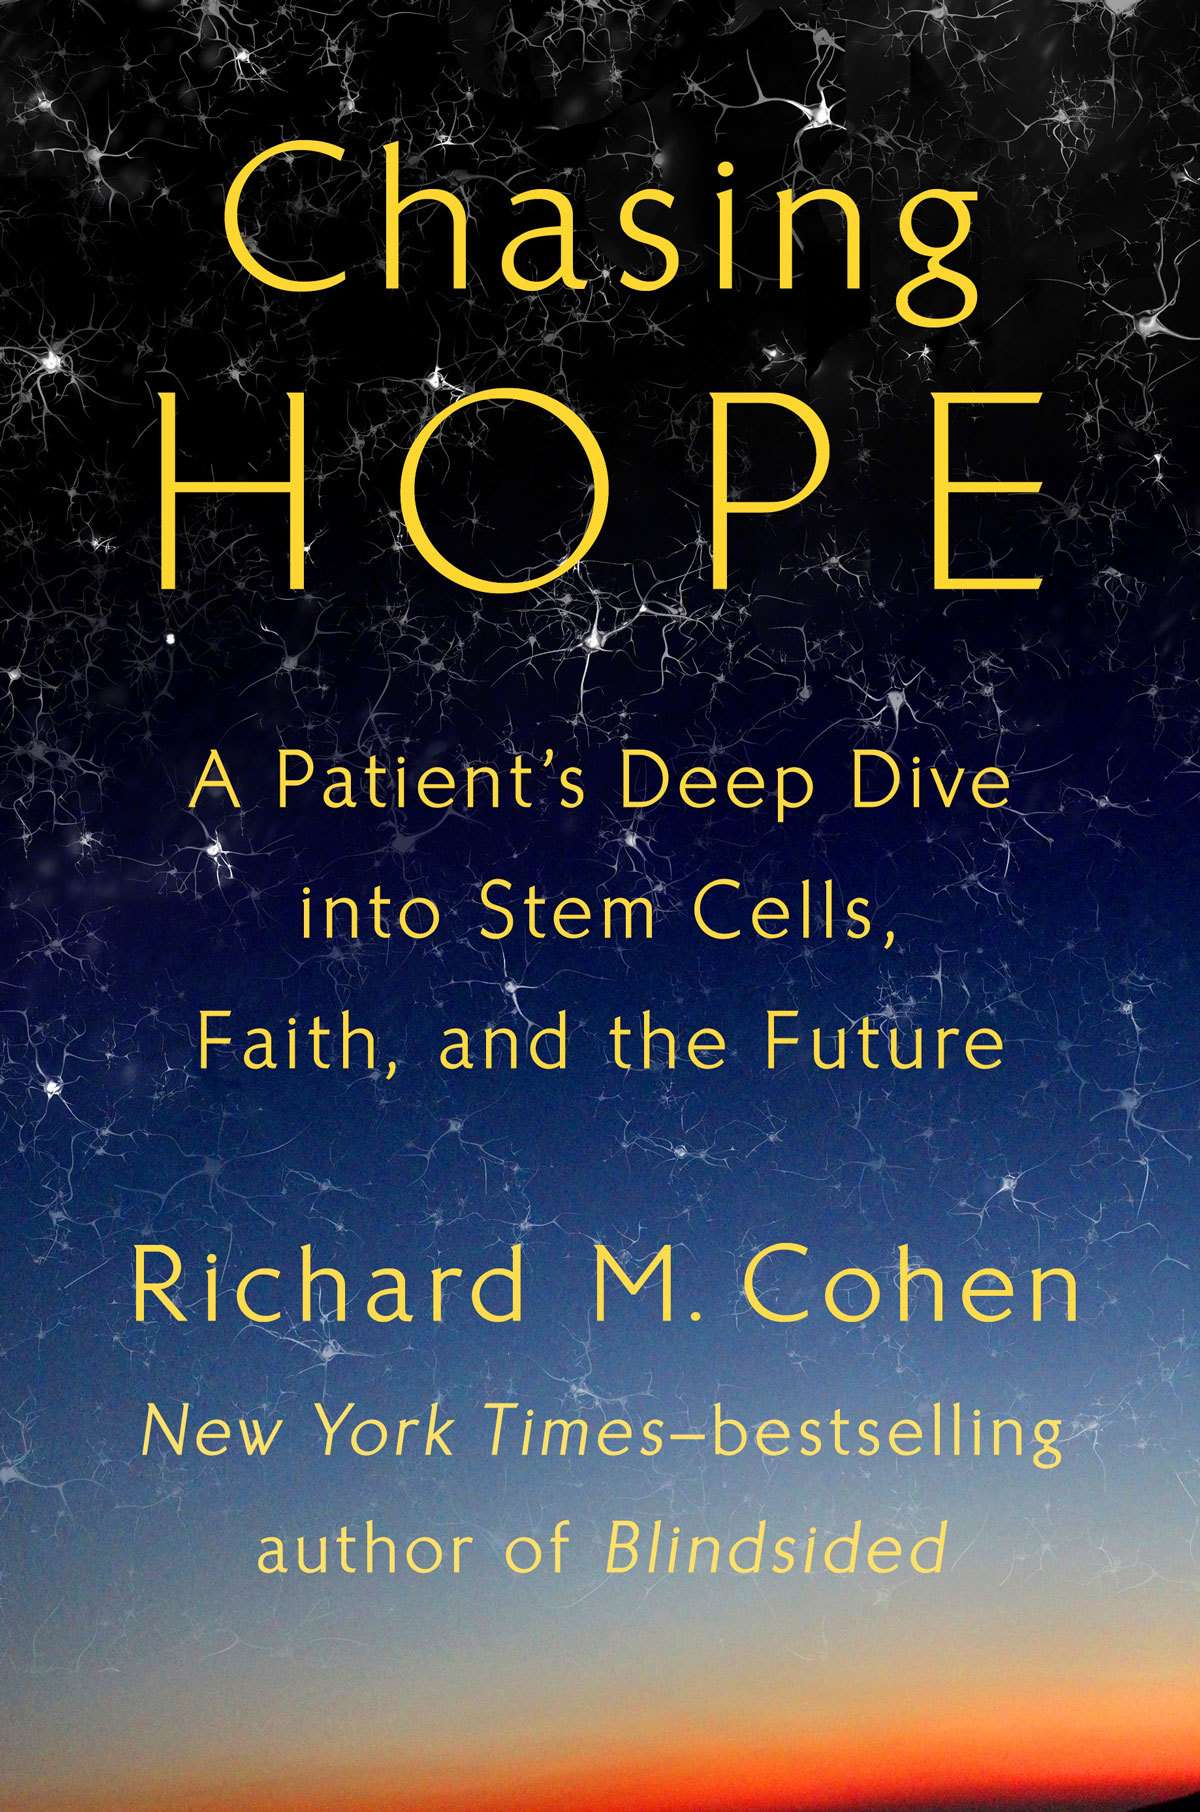 Book Review Chasing Hope